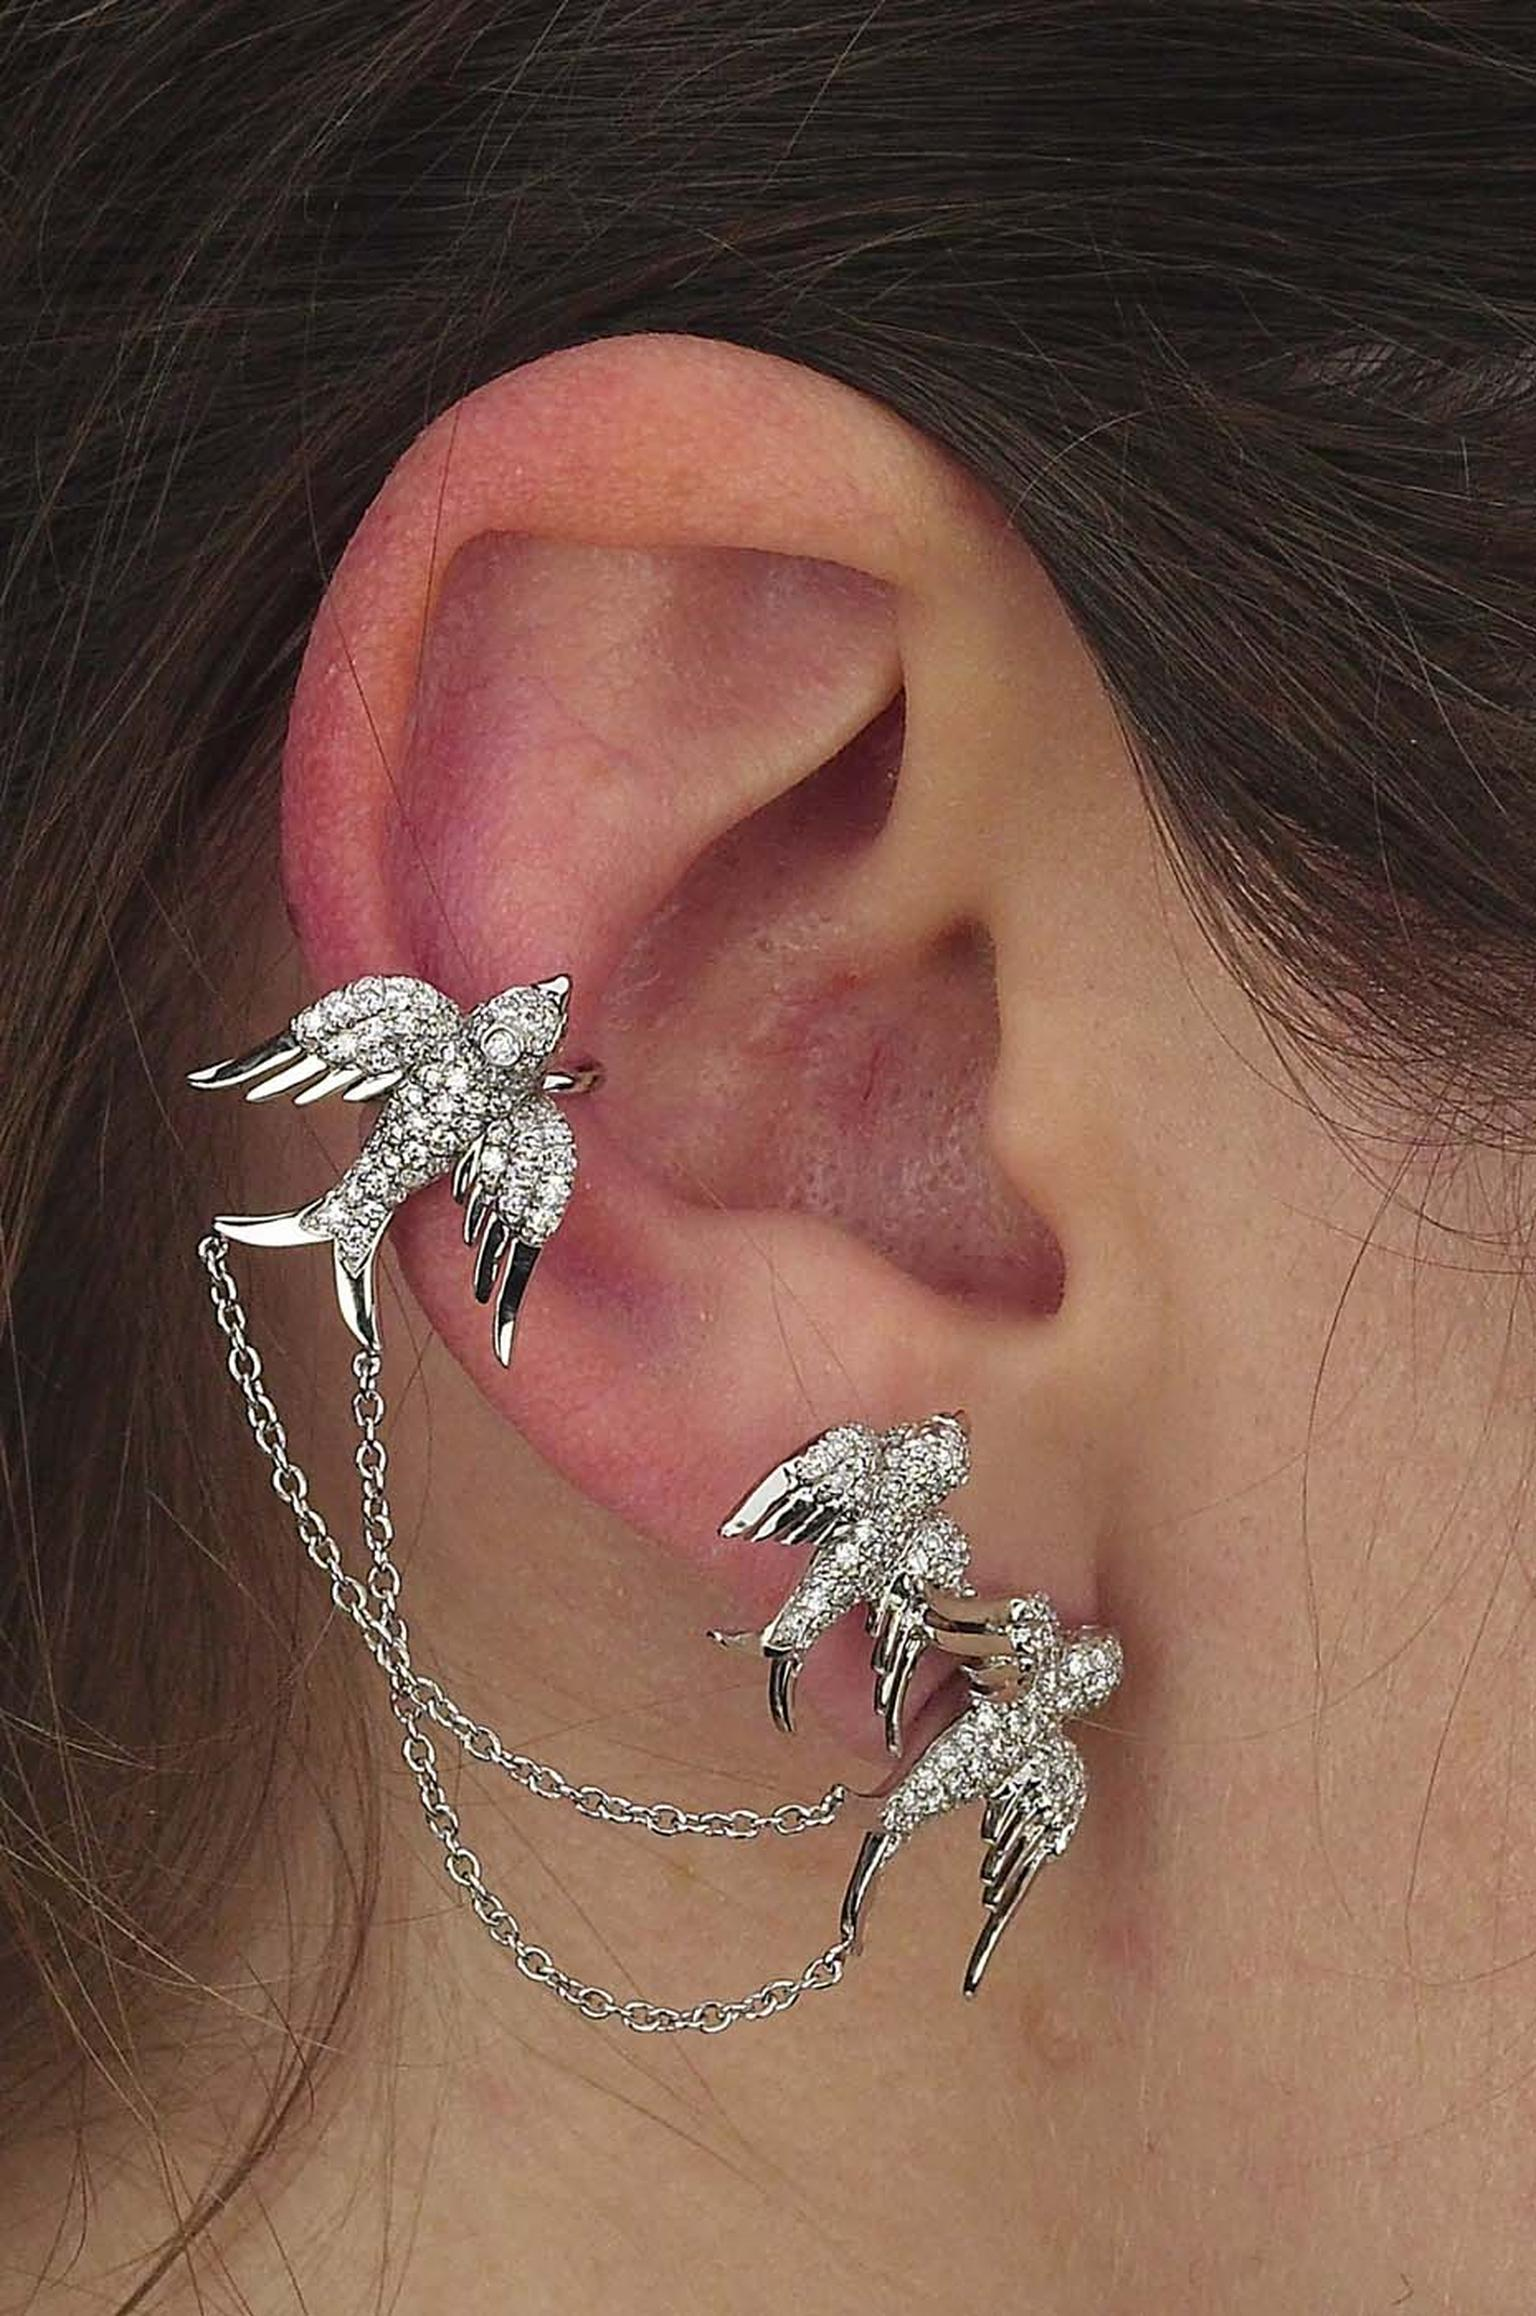 Colette Blue Drift white gold 3 Bird ear cuff with white diamonds.